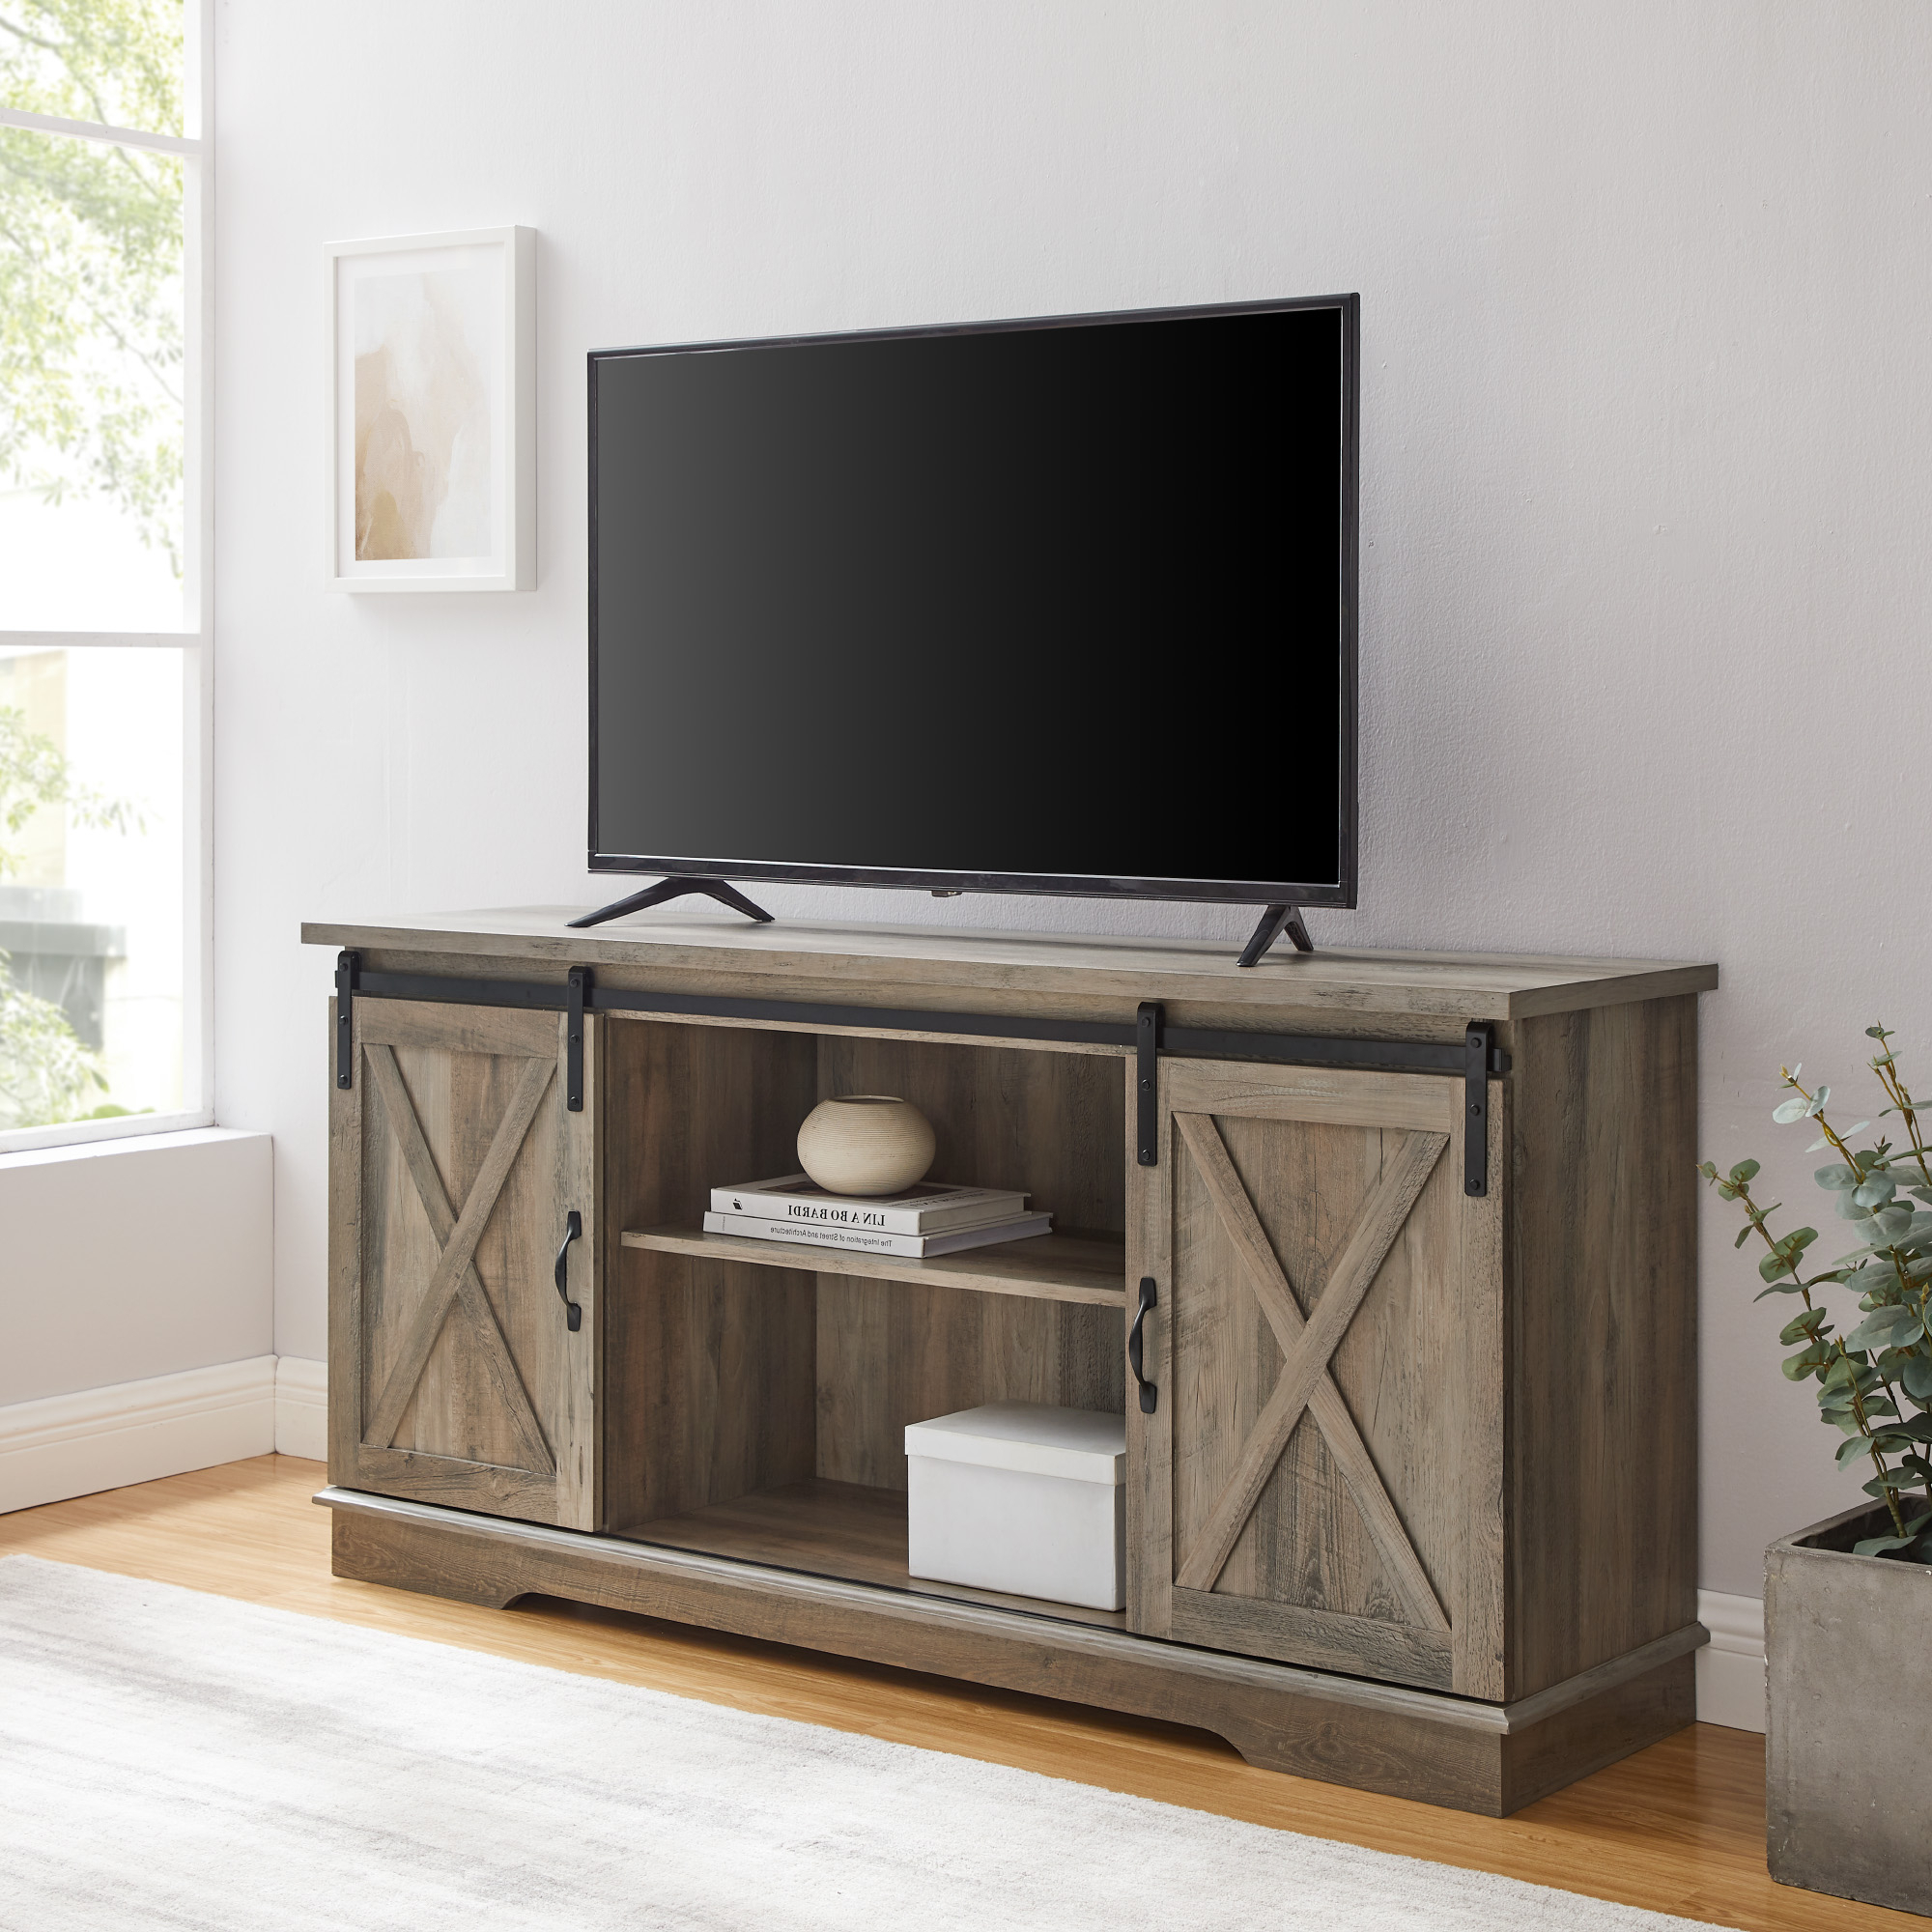 """Latest Woven Paths Farmhouse Sliding Barn Door Tv Stand For Tvs Regarding Calea Tv Stands For Tvs Up To 65"""" (View 2 of 25)"""